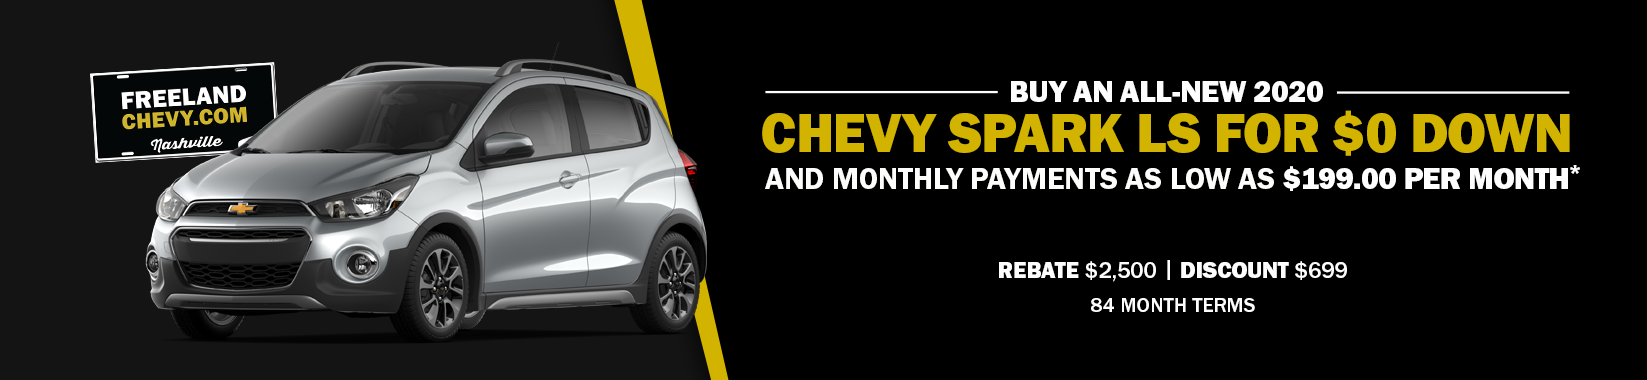 BUY AND ALL-NEW 2020 CHEVROLET SPARK FOR $0 DOWN AND MONTHLY PAYMENTS AS LOW AS $199 A MONTH!